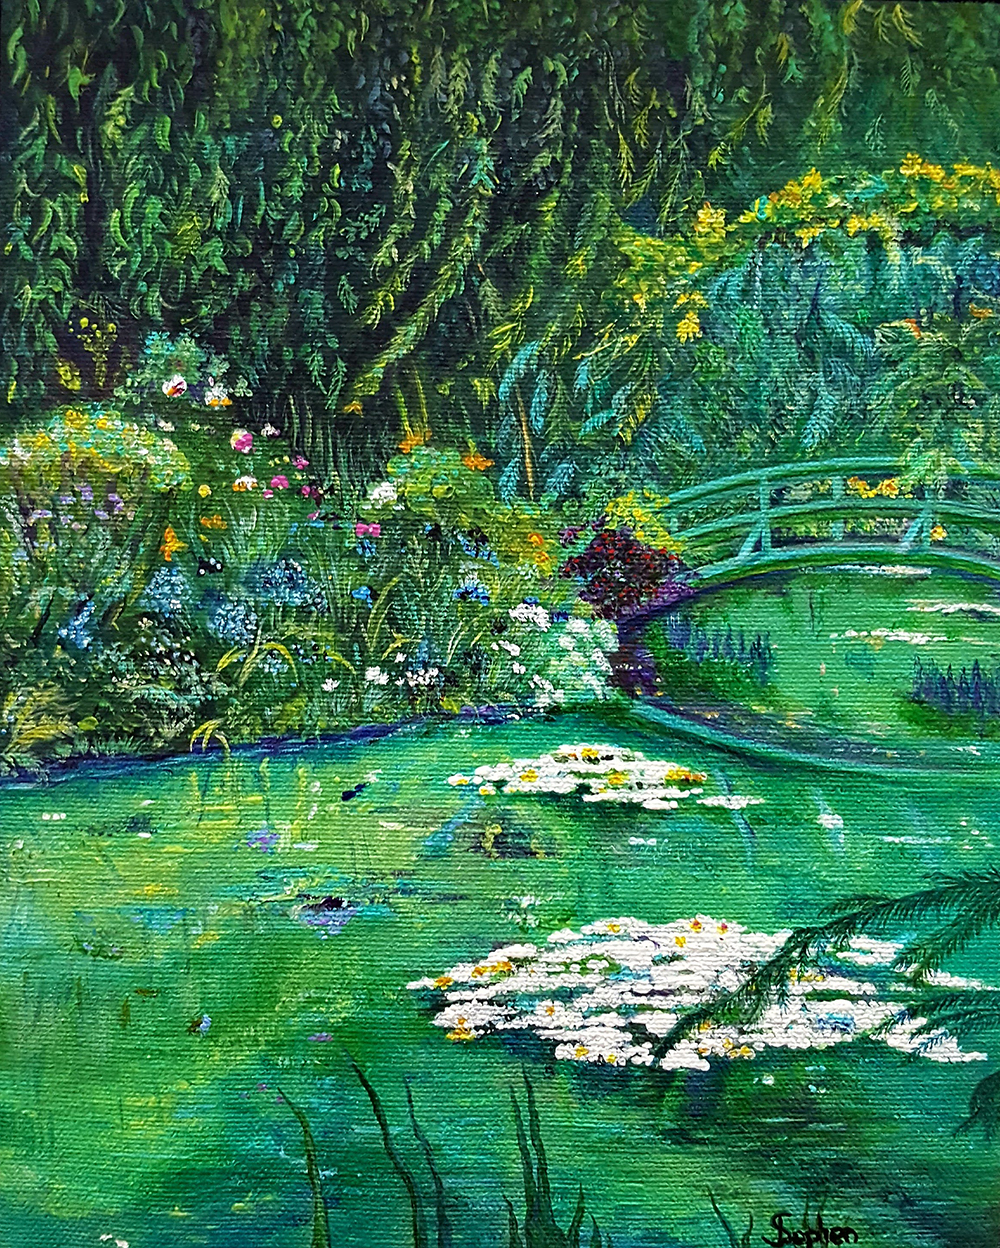 Deborah Stephen - Garden at Giverny with Bridge